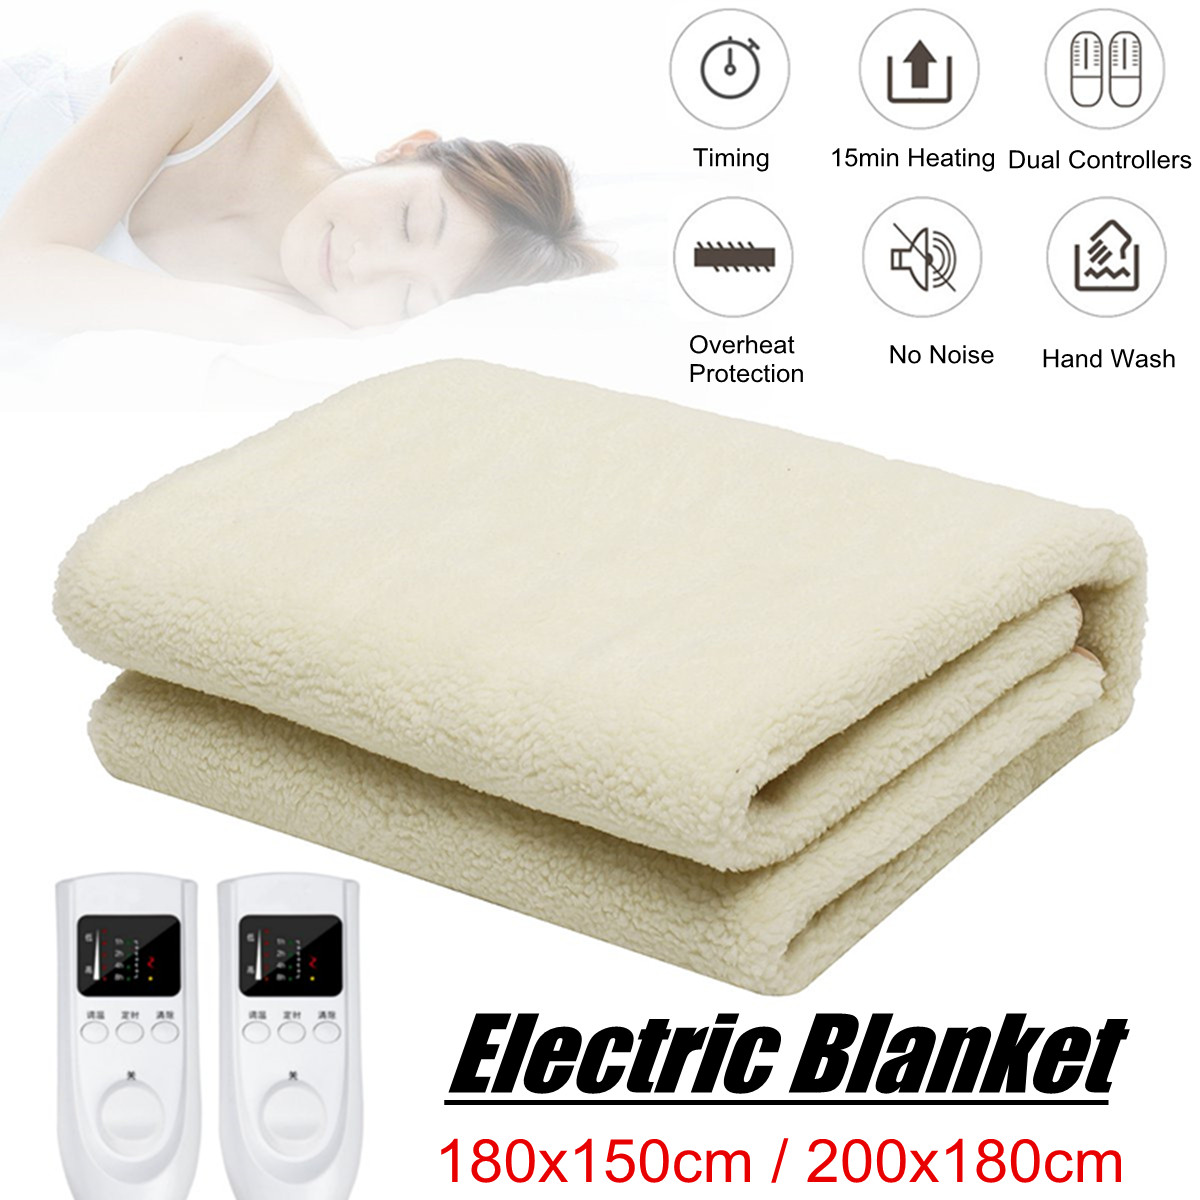 Electric Heated Blanket Winter Thermal Warm Quilt Sheet Artificial Fleece Soft Over Throw Rug Dual Digital Timer ControllerElectric Heated Blanket Winter Thermal Warm Quilt Sheet Artificial Fleece Soft Over Throw Rug Dual Digital Timer Controller